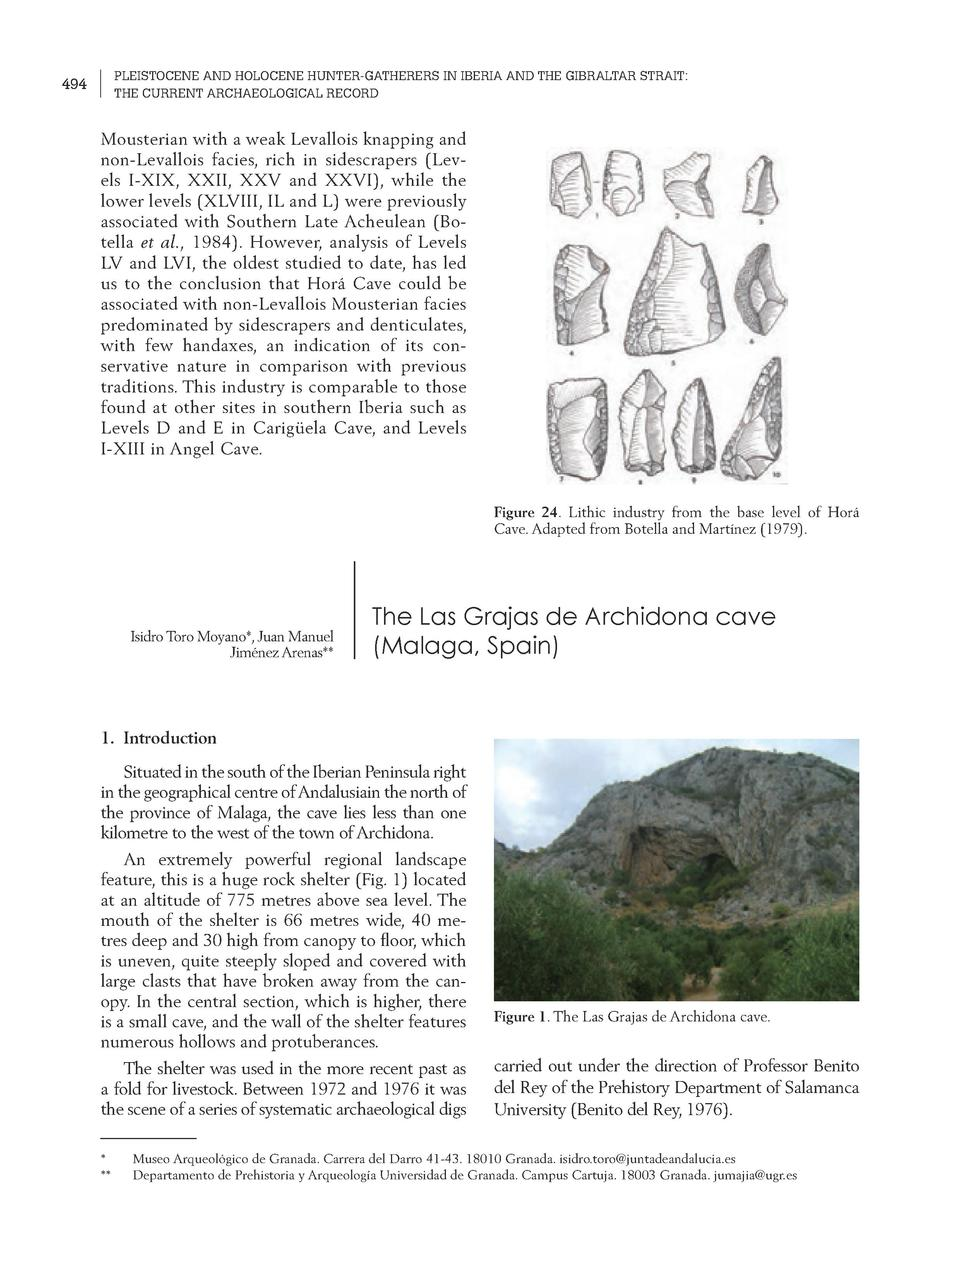 PLEISTOCENE AND HOLOCENE HUNTER-GATHERERS IN IBERIA AND THE GIBRALTAR STRAIT  THE CURRENT ARCHAEOLOGICAL RECORD  494  Mous...